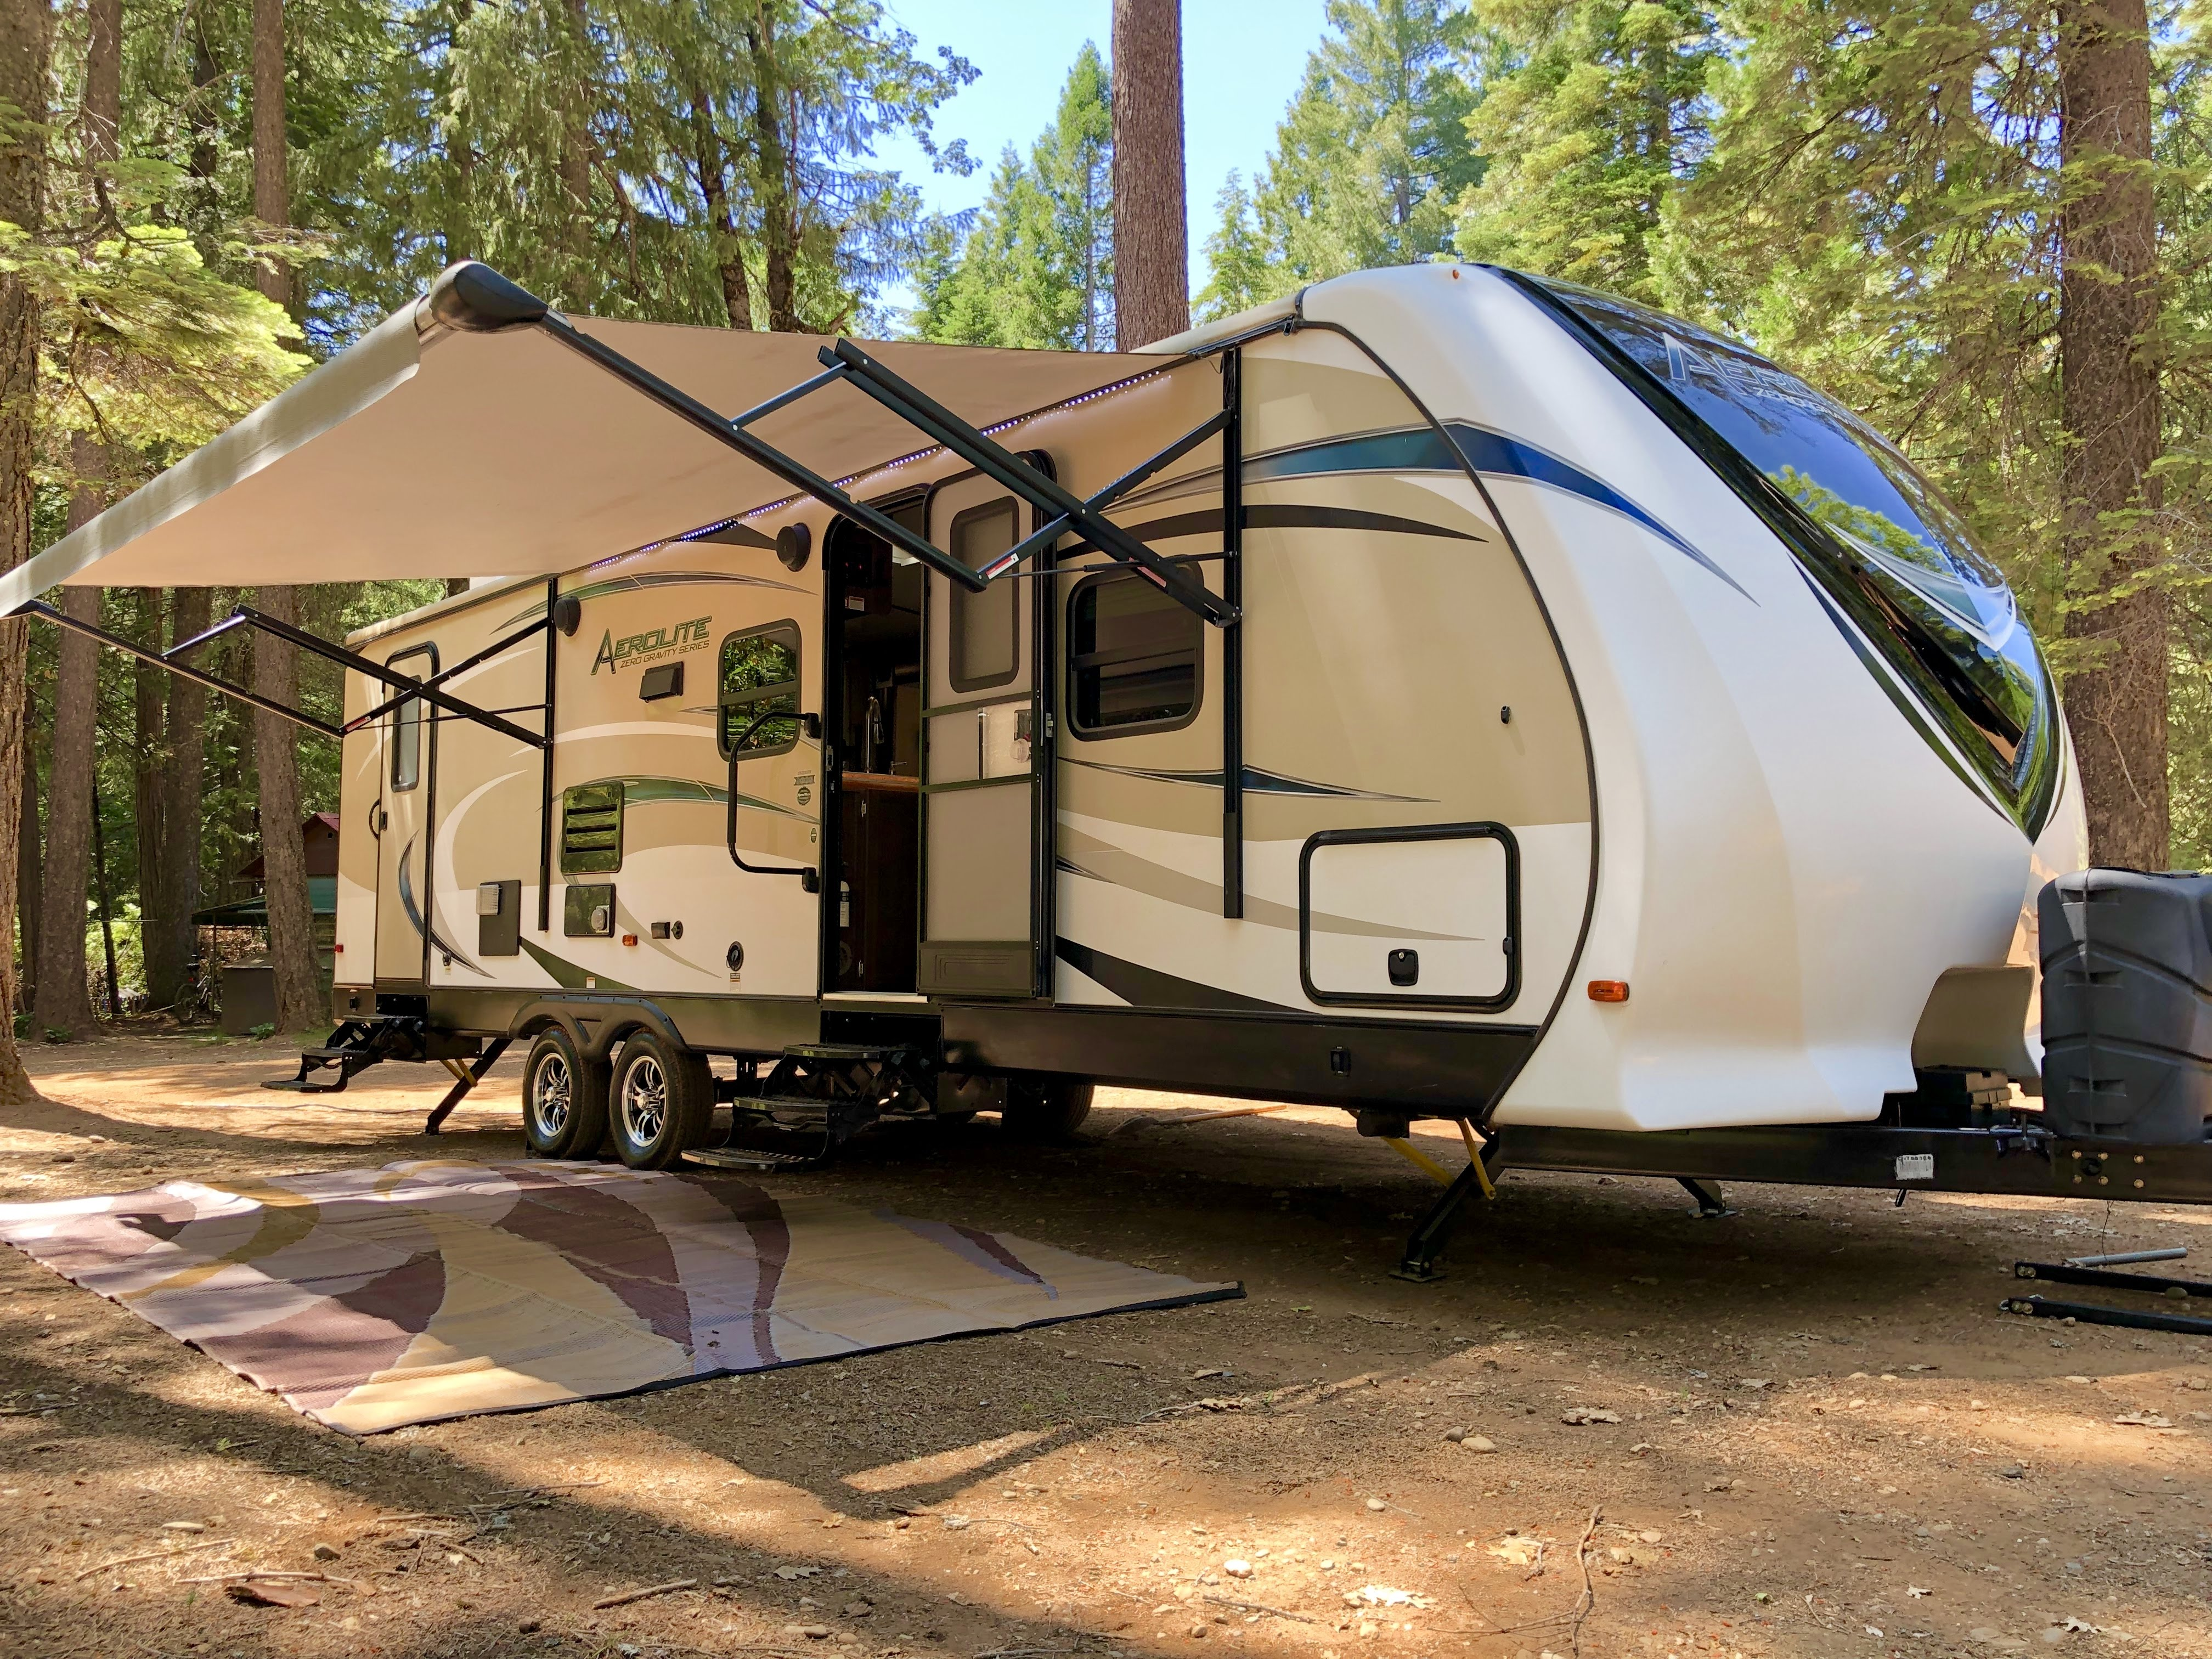 Camping in the woods!. Aerolite Travel Trailer 2017